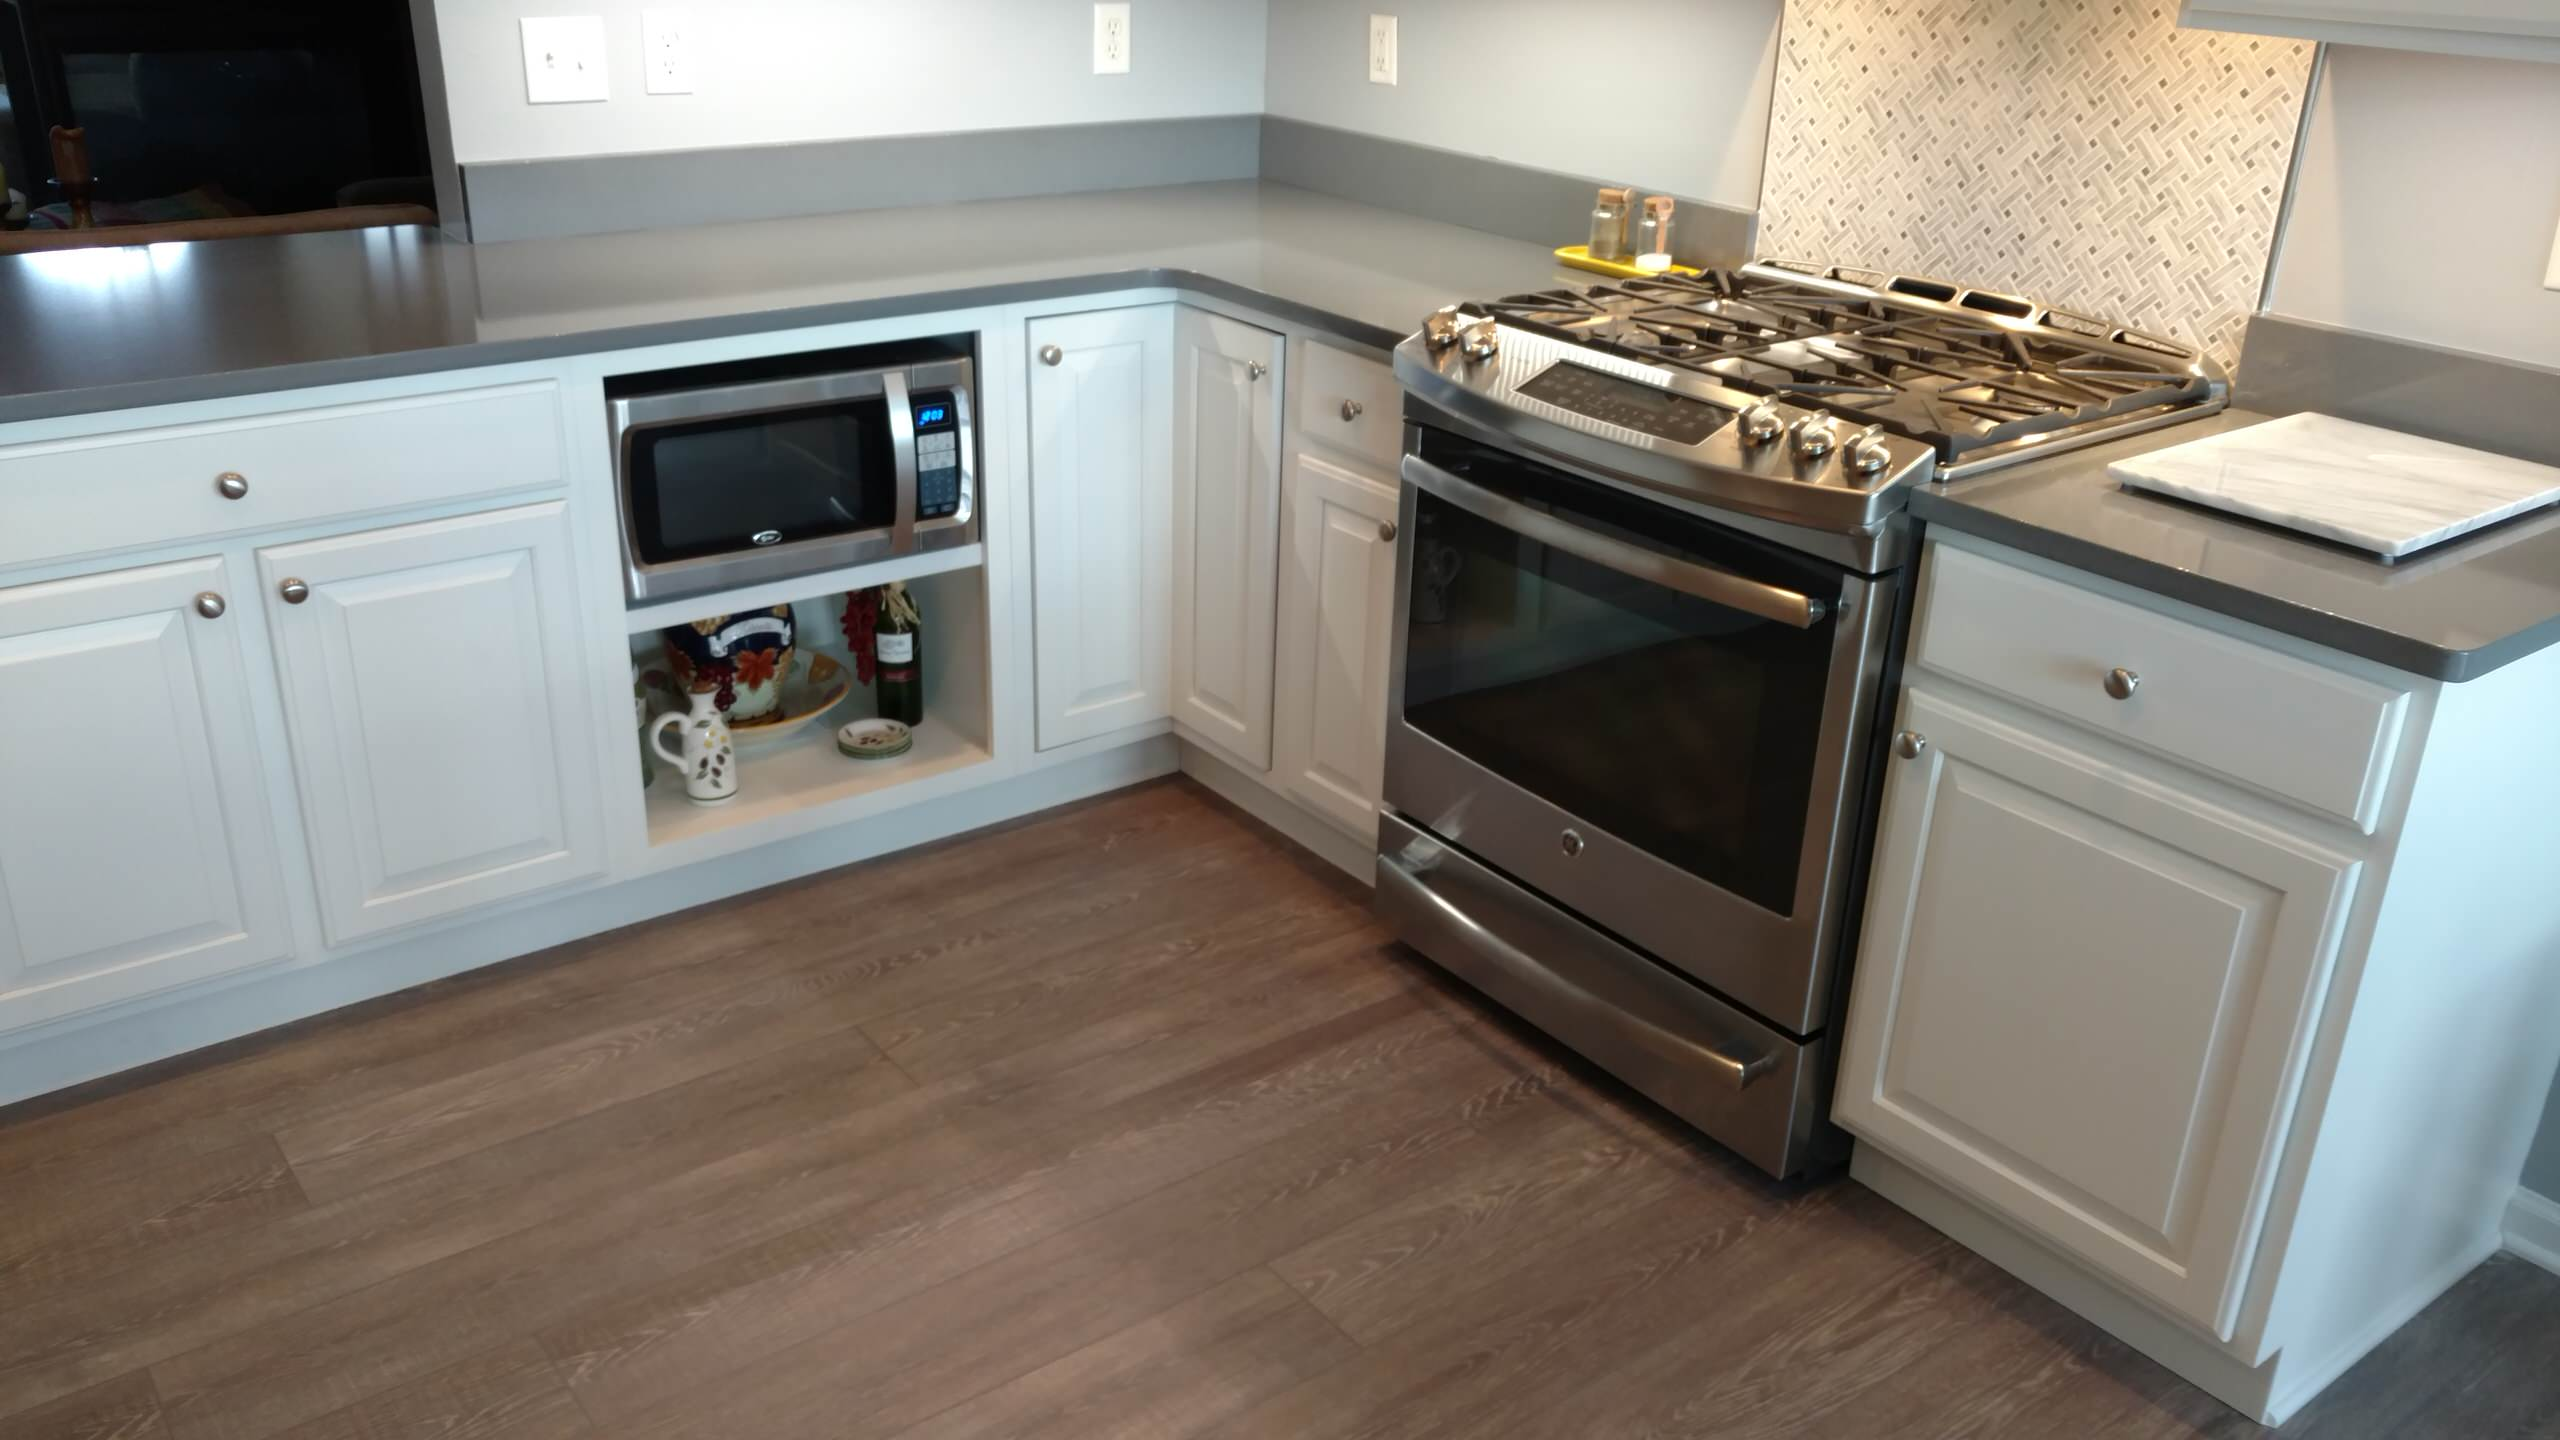 Kitchen Remodel, Painting Existing Cabinets is a Challenge!